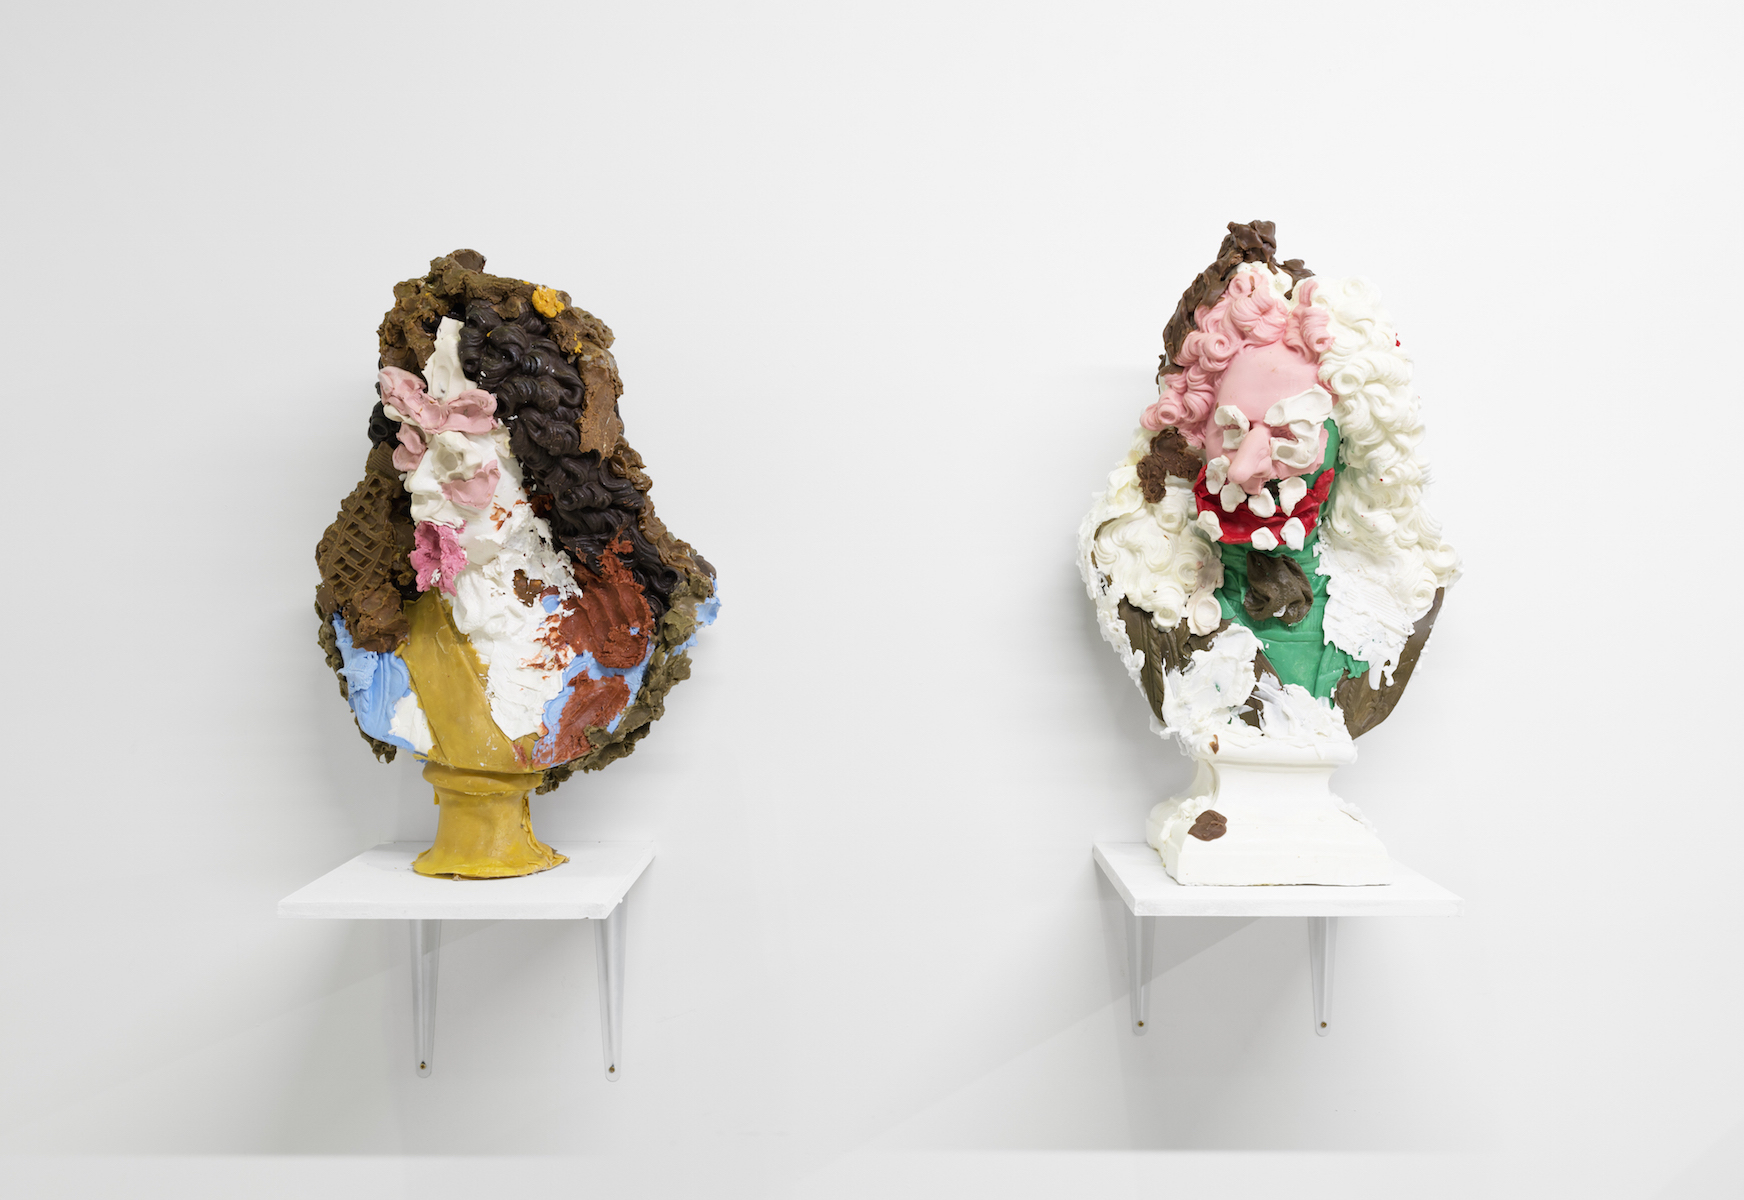 Jamie Fitzpatrick, Untitled (Bust 1) and Untitled (Bust 2), 2016. Wax, scrim, polyurethane foam. 69 x 39 x 25 cm / 64 x 39 x 27 cm.